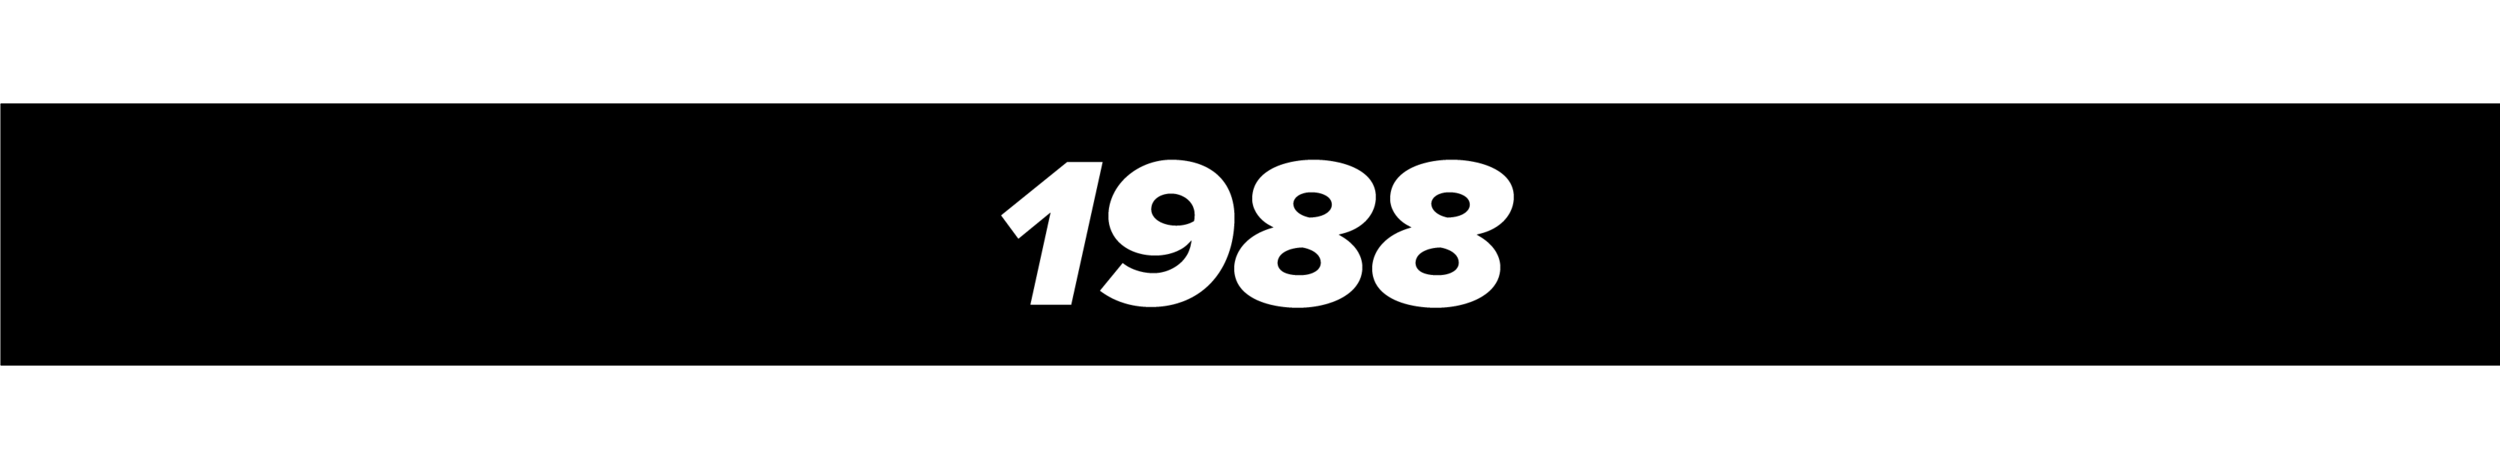 1988 long banner.png